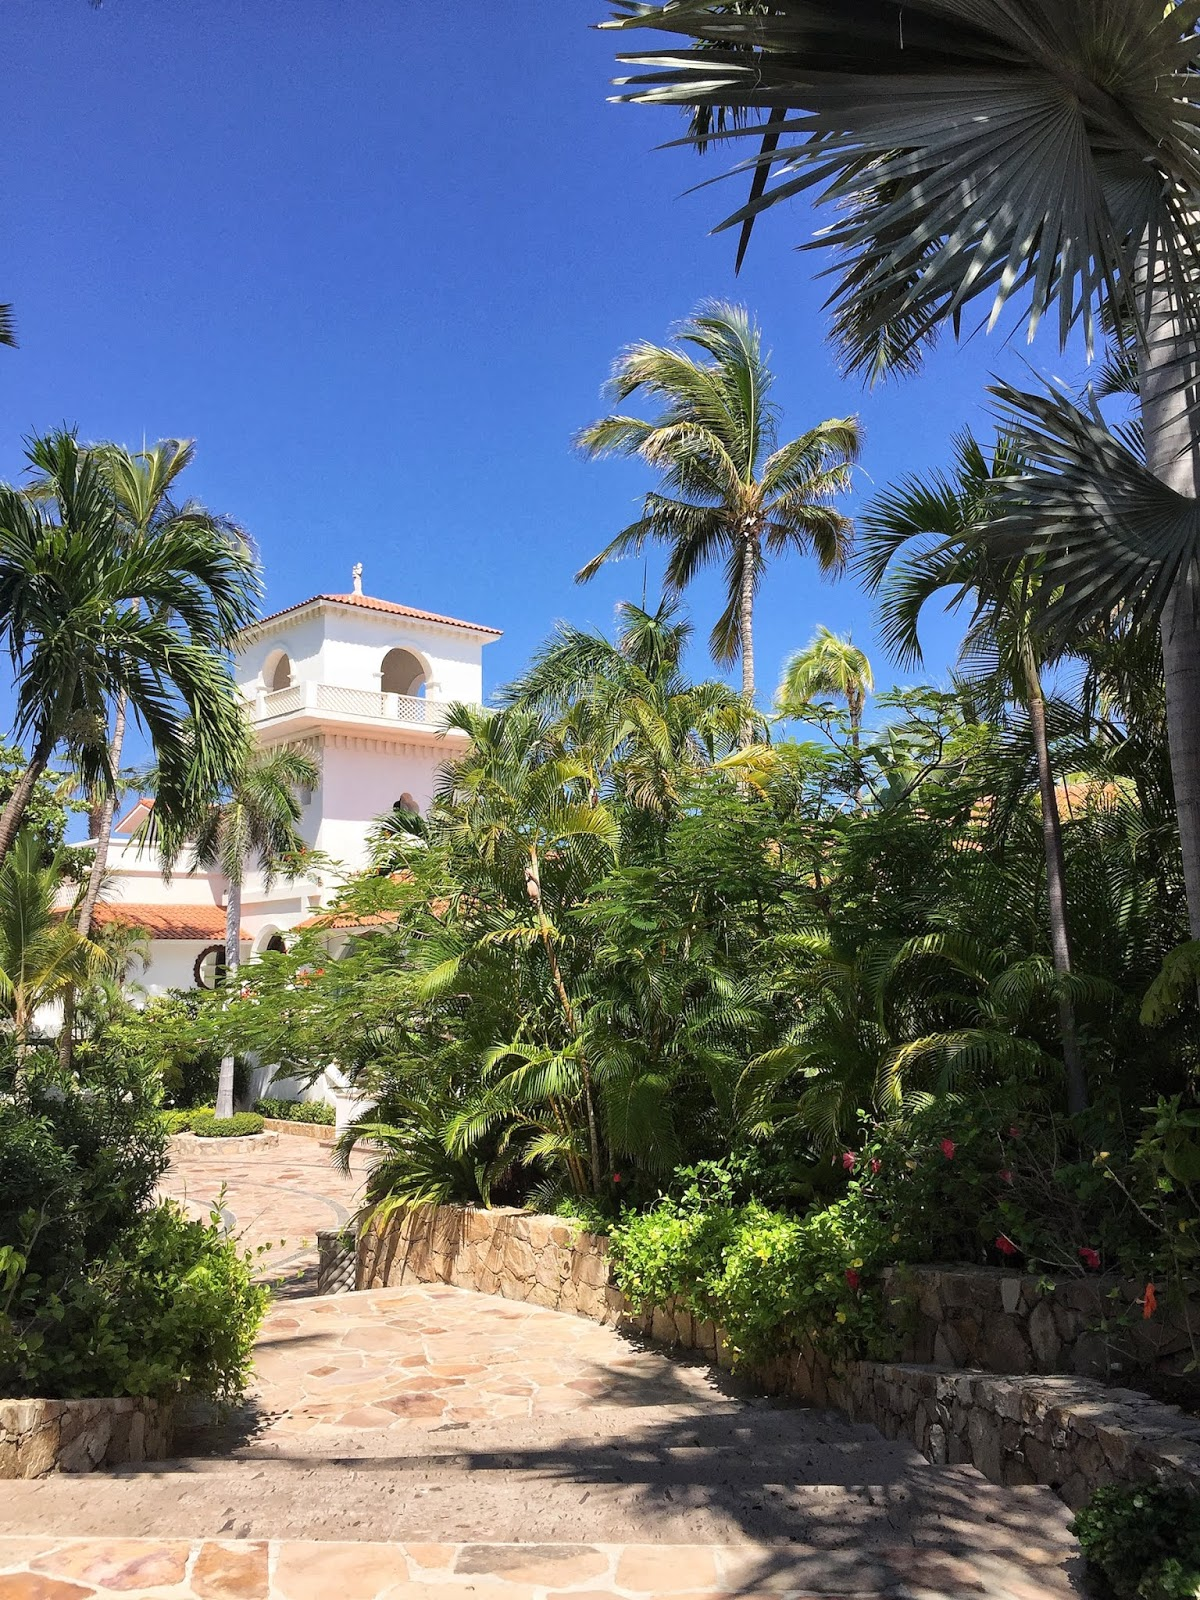 Los Cabos travel guide One&Only Palmilla Resort